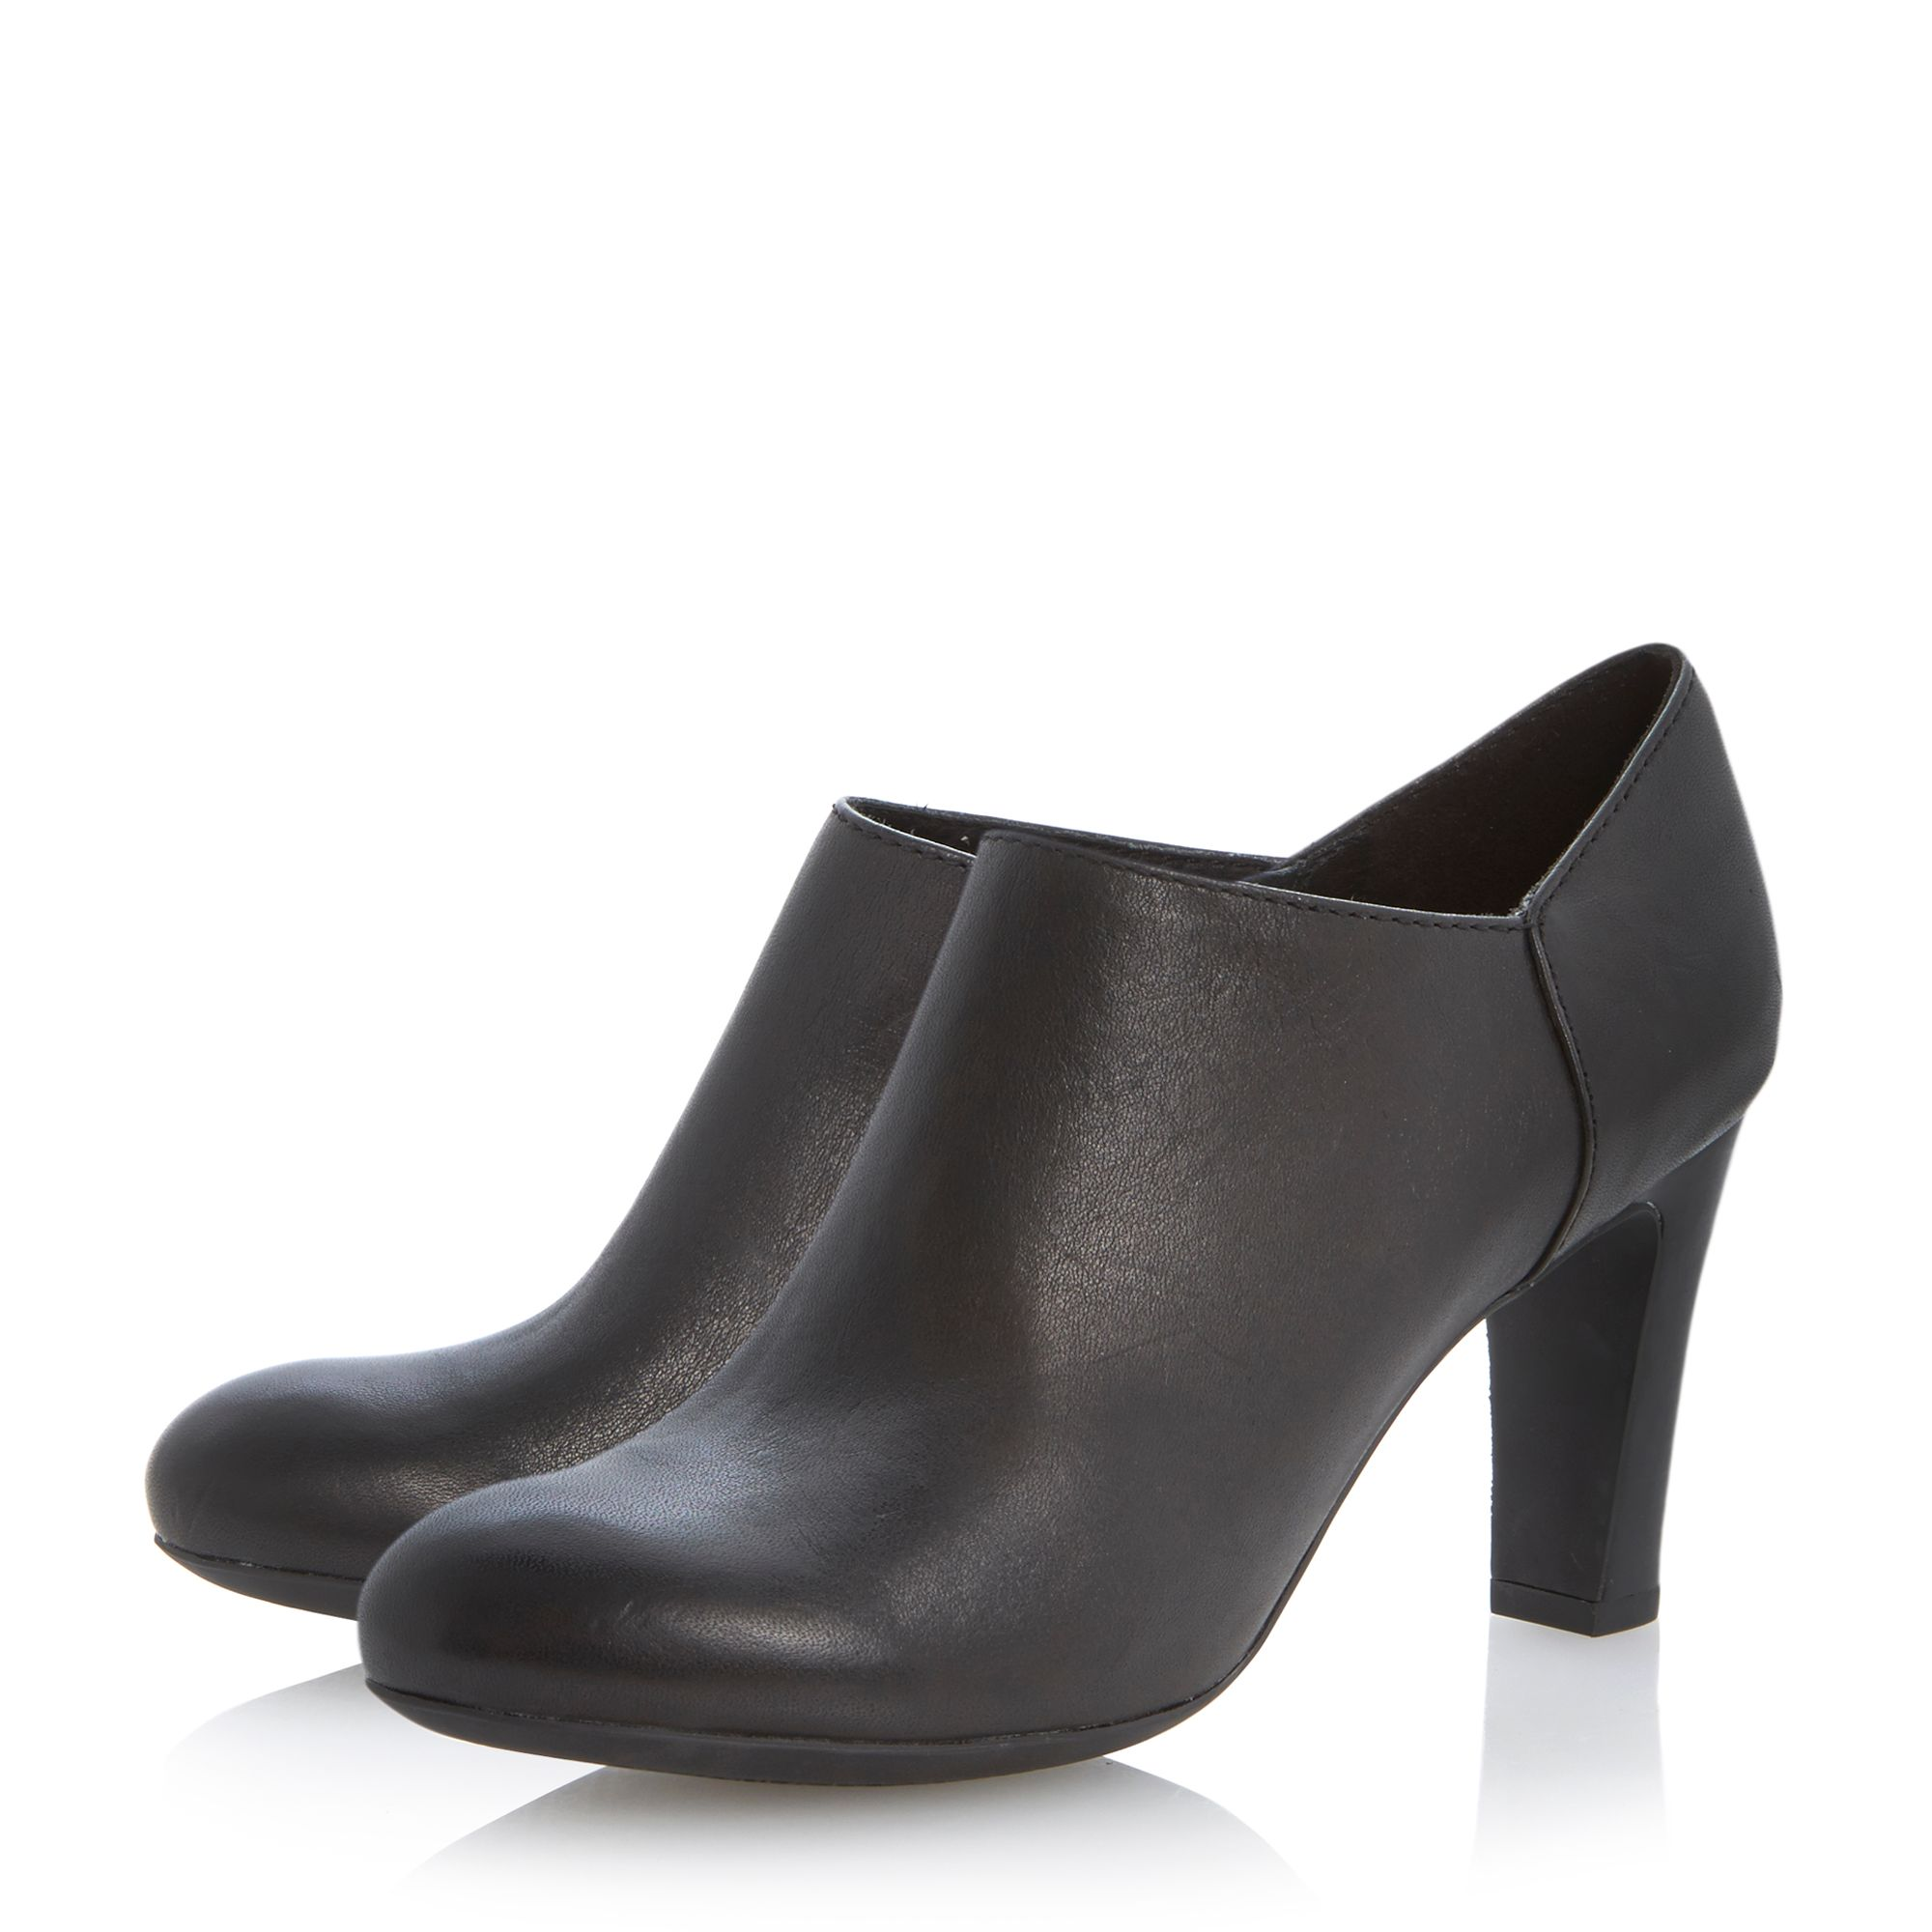 New marieclaire ankle boots